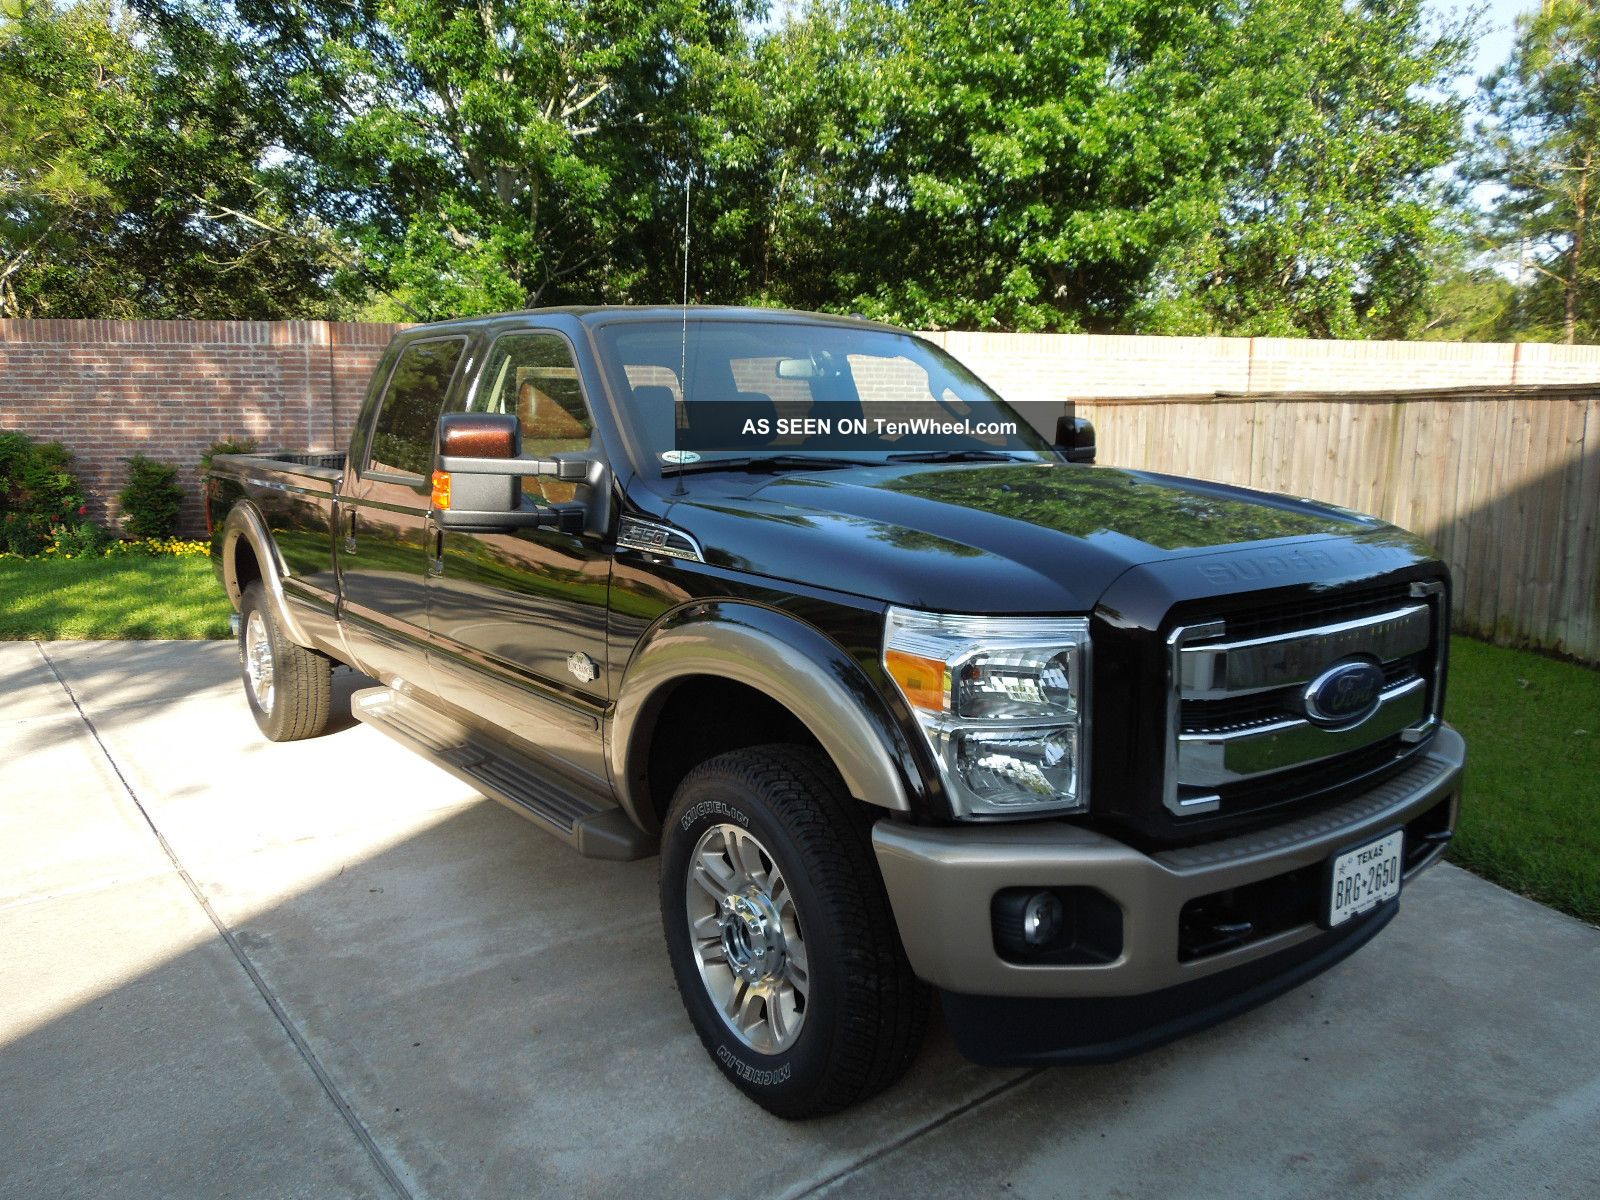 2013 Ford F350 King Ranch Truck By Owner F-350 photo